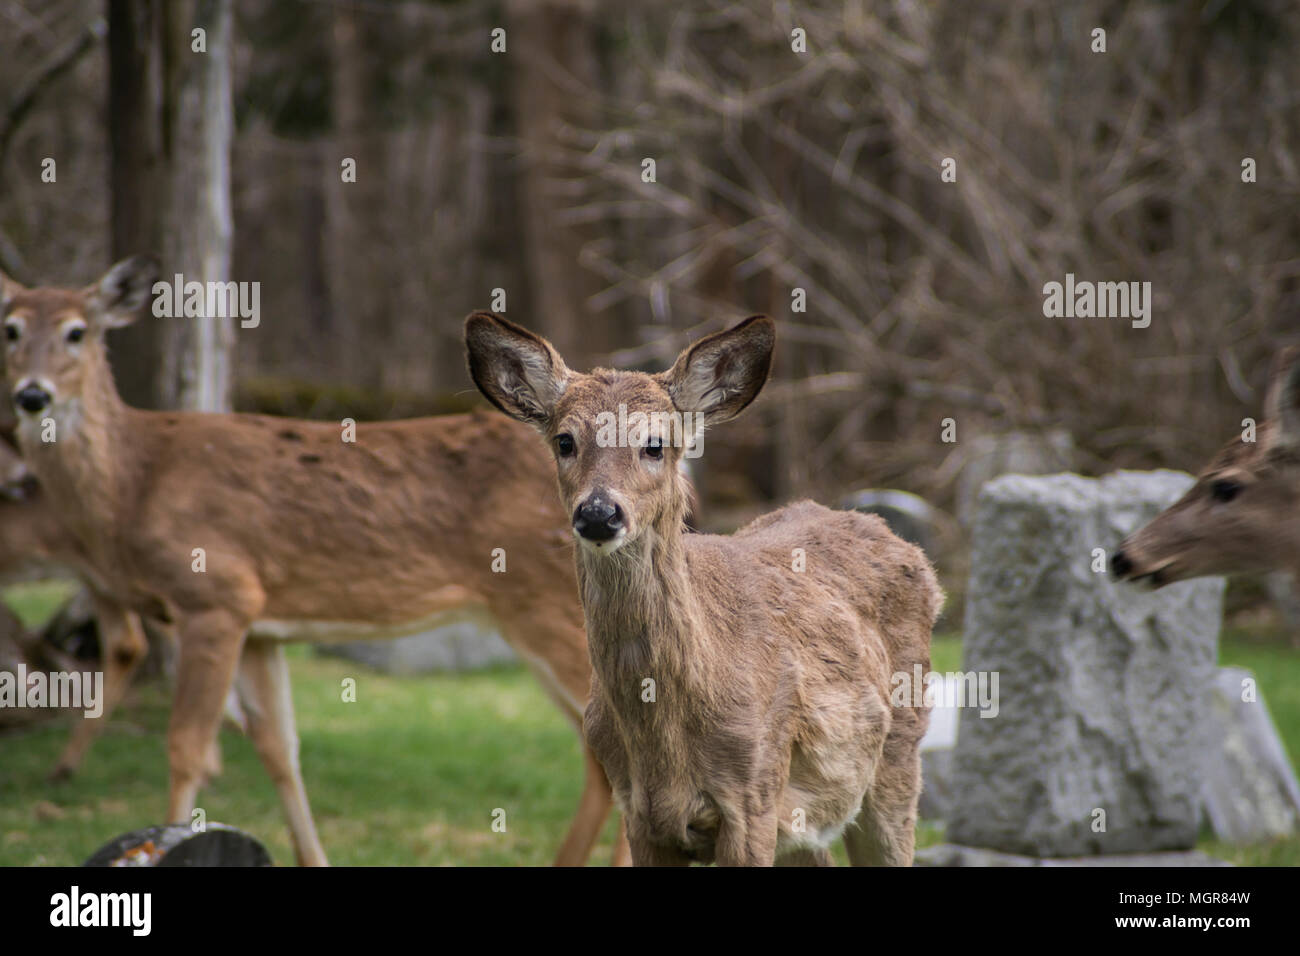 A Portrait of A White-Tailed Deer (Virginia Deer) Stock Photo